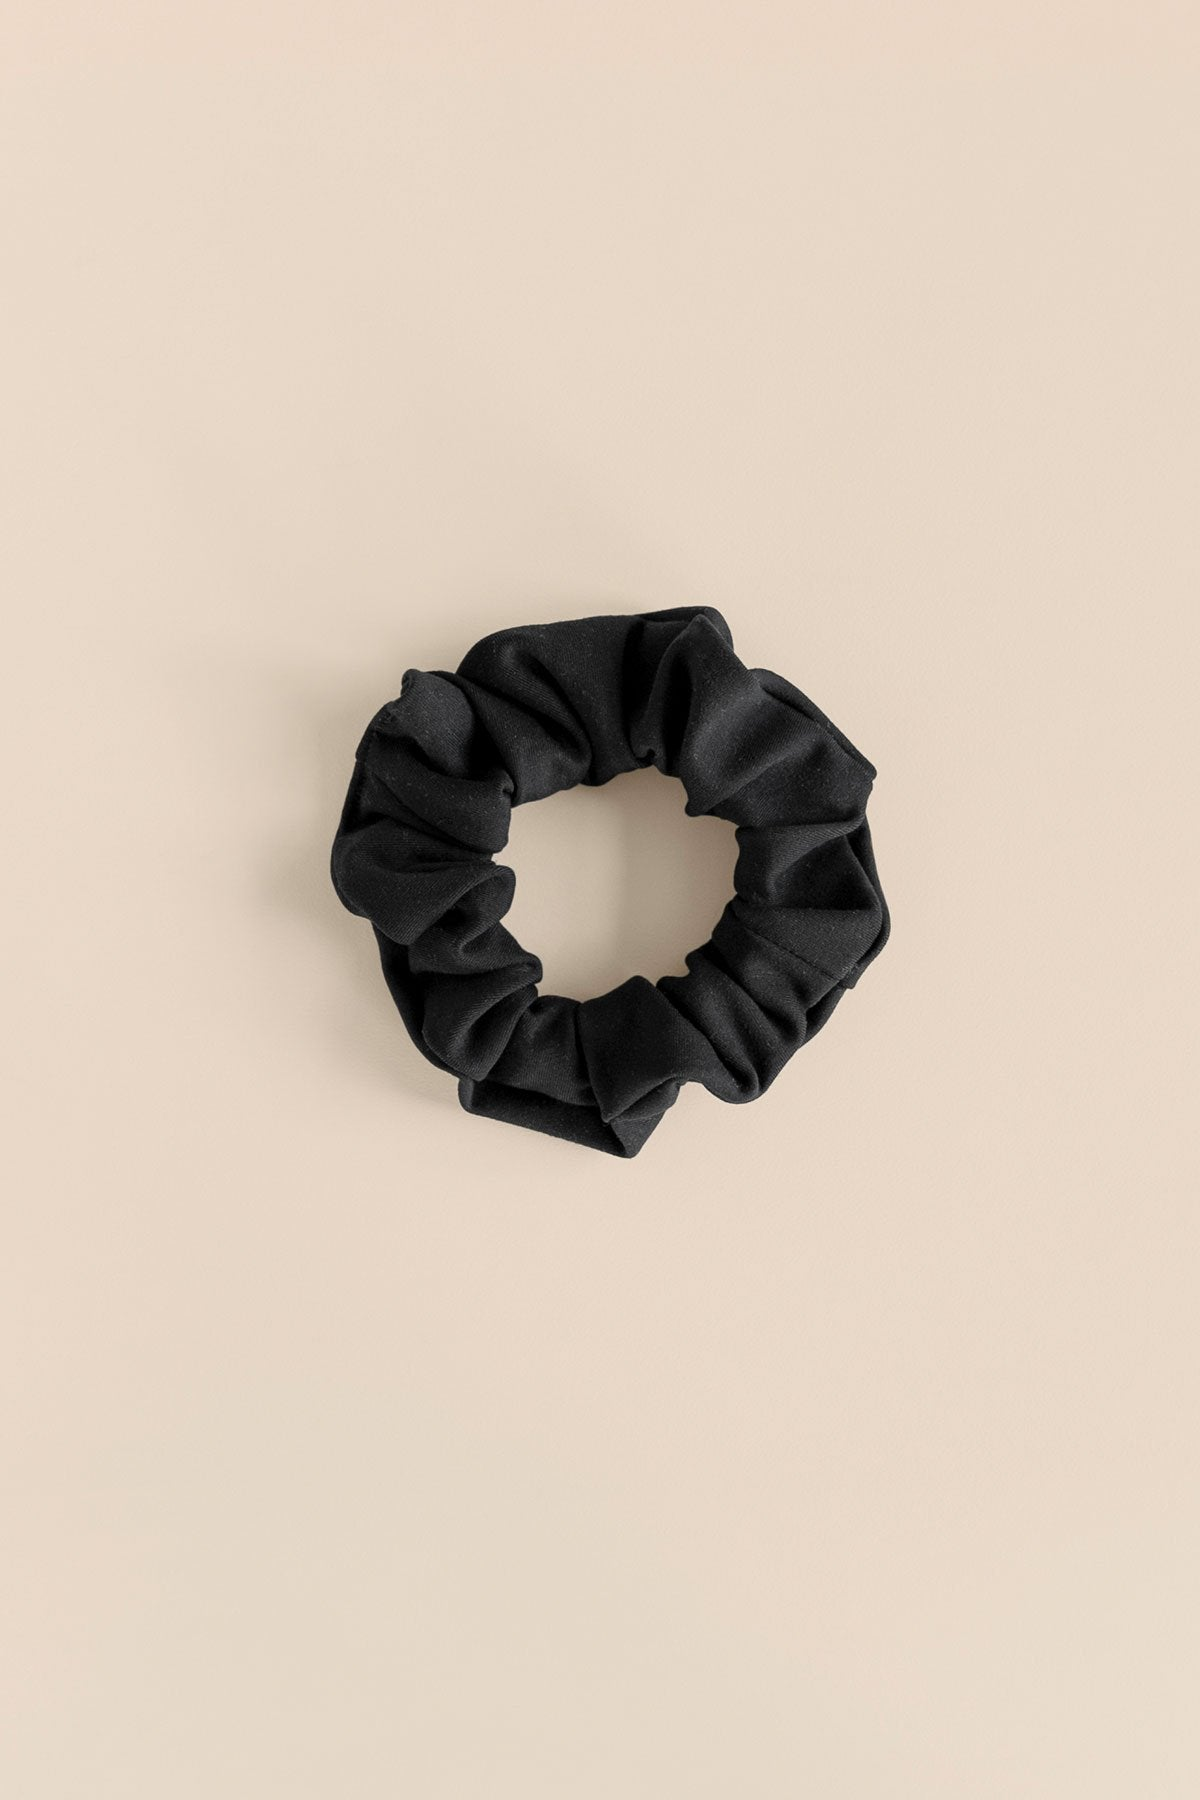 Girlfriend Collective - The Scrunchie - Made from Recycled Water Bottles - Weekendbee - sustainable sportswear